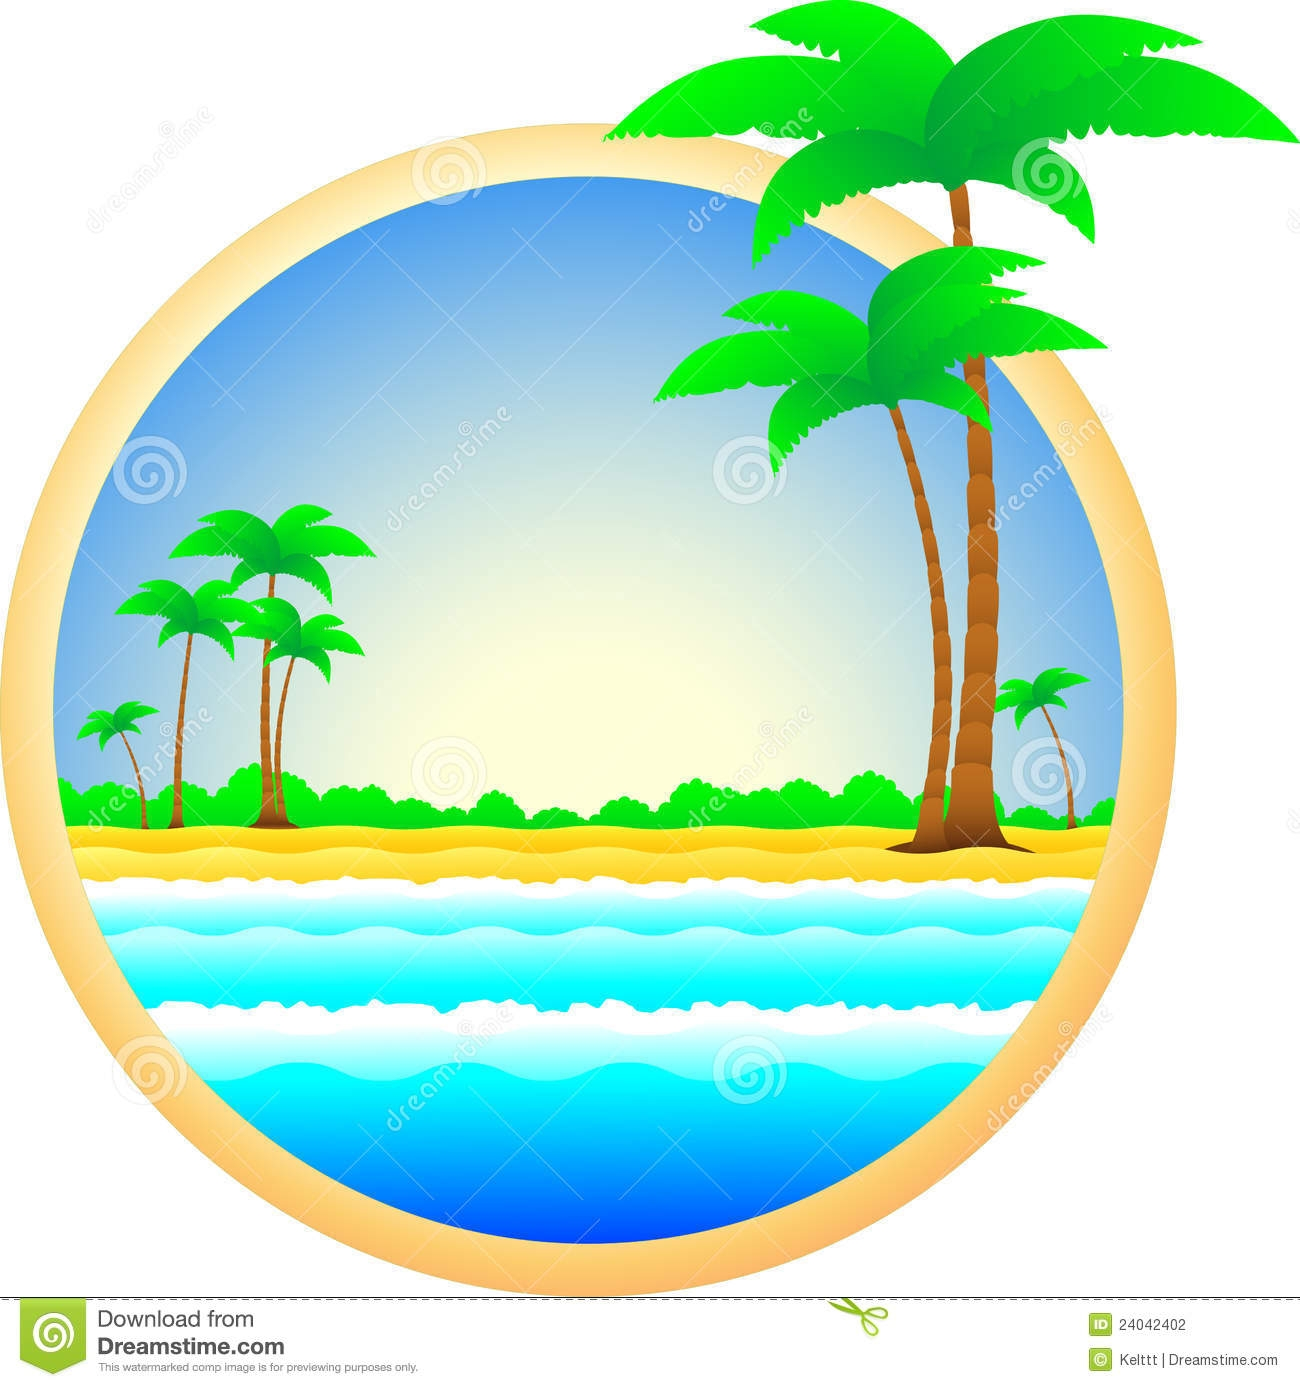 Star river resort clipart picture royalty free download Beach resort clipart - ClipartFest picture royalty free download